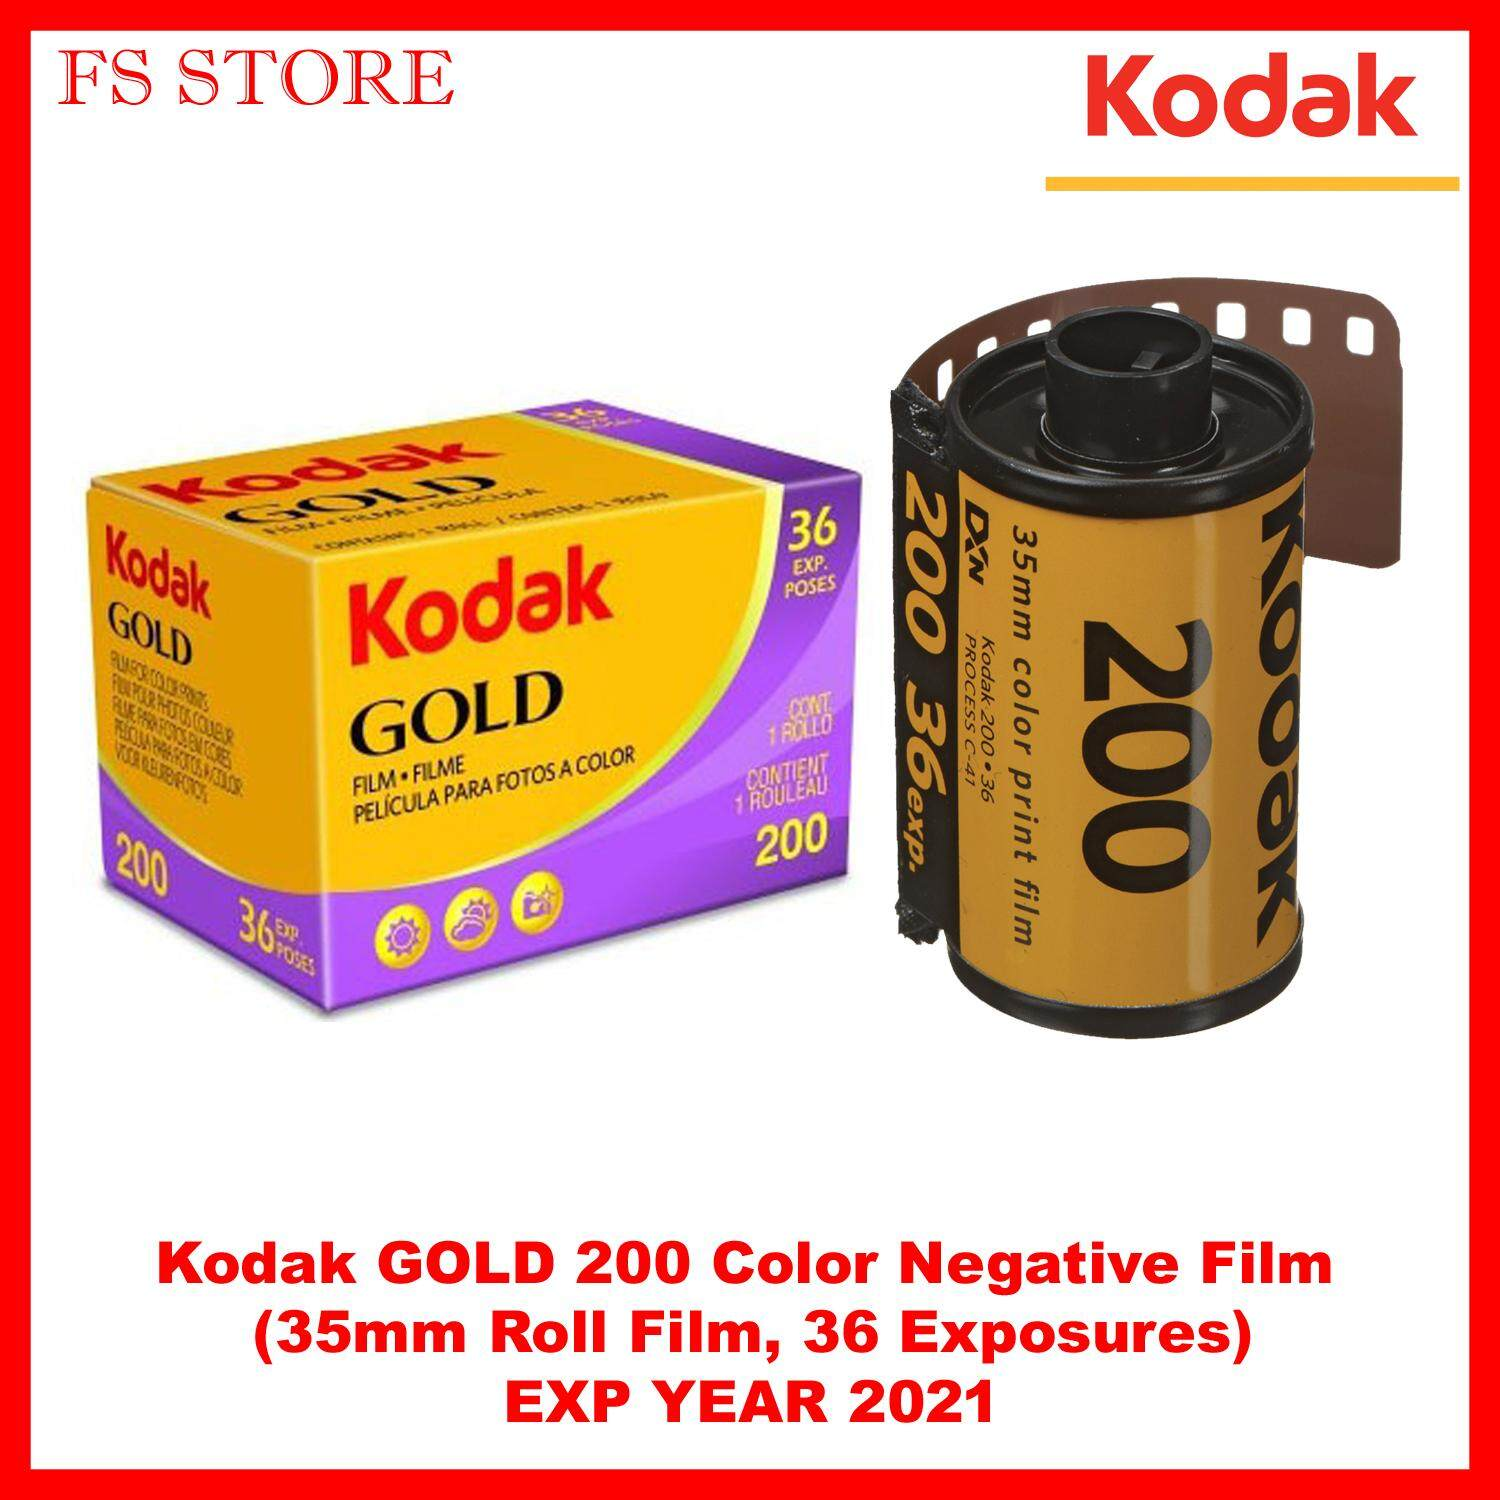 Kodak Gold 200 Color Negative Film (35mm Roll Film, 36 Exposures) Exp Year 2021 By Fs Store.